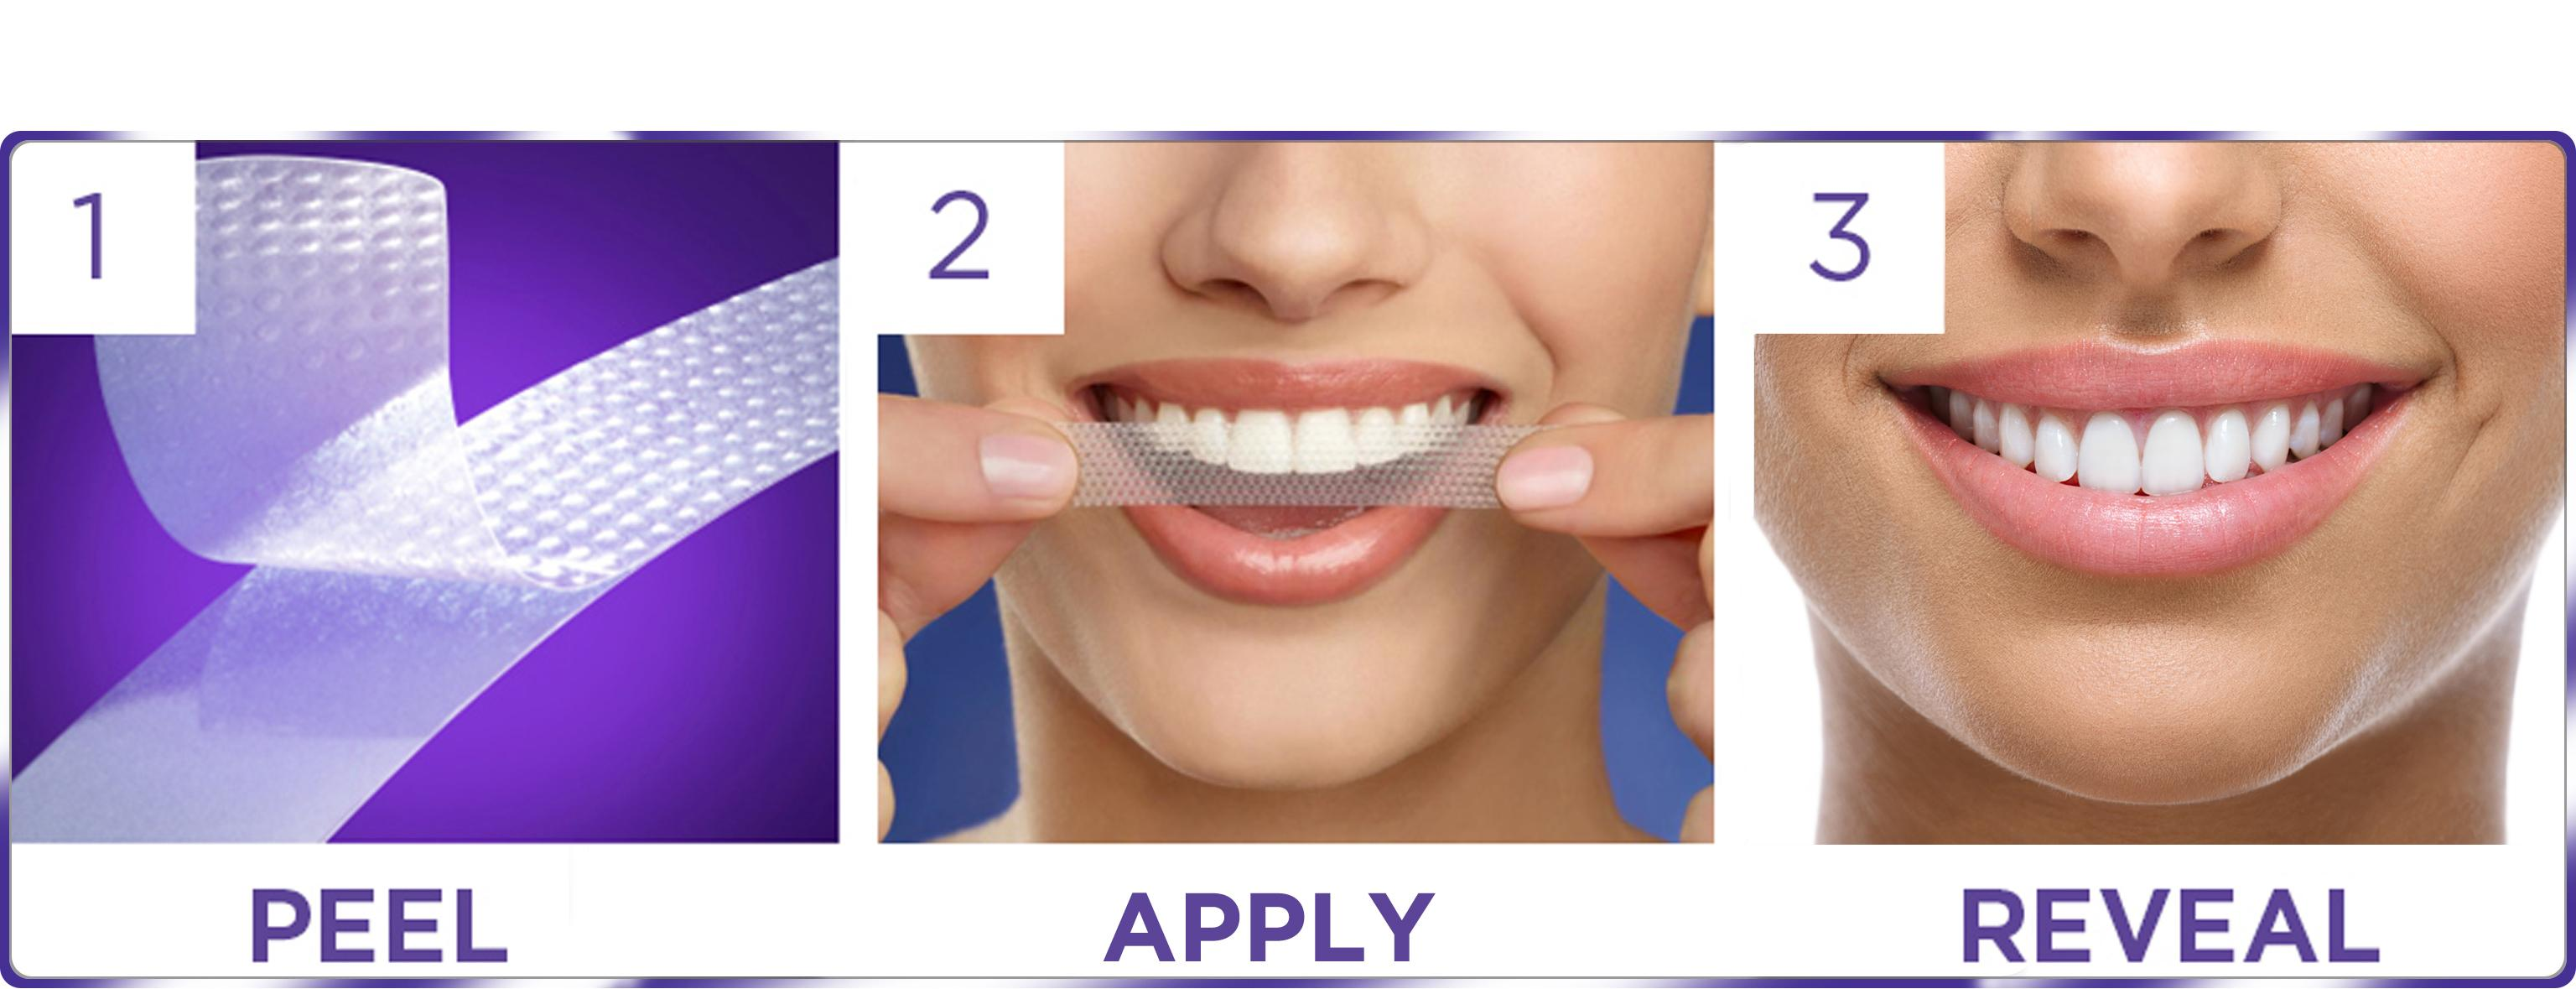 5 Best Teeth Whitening Kits Of 2020 The Smartest Buyer